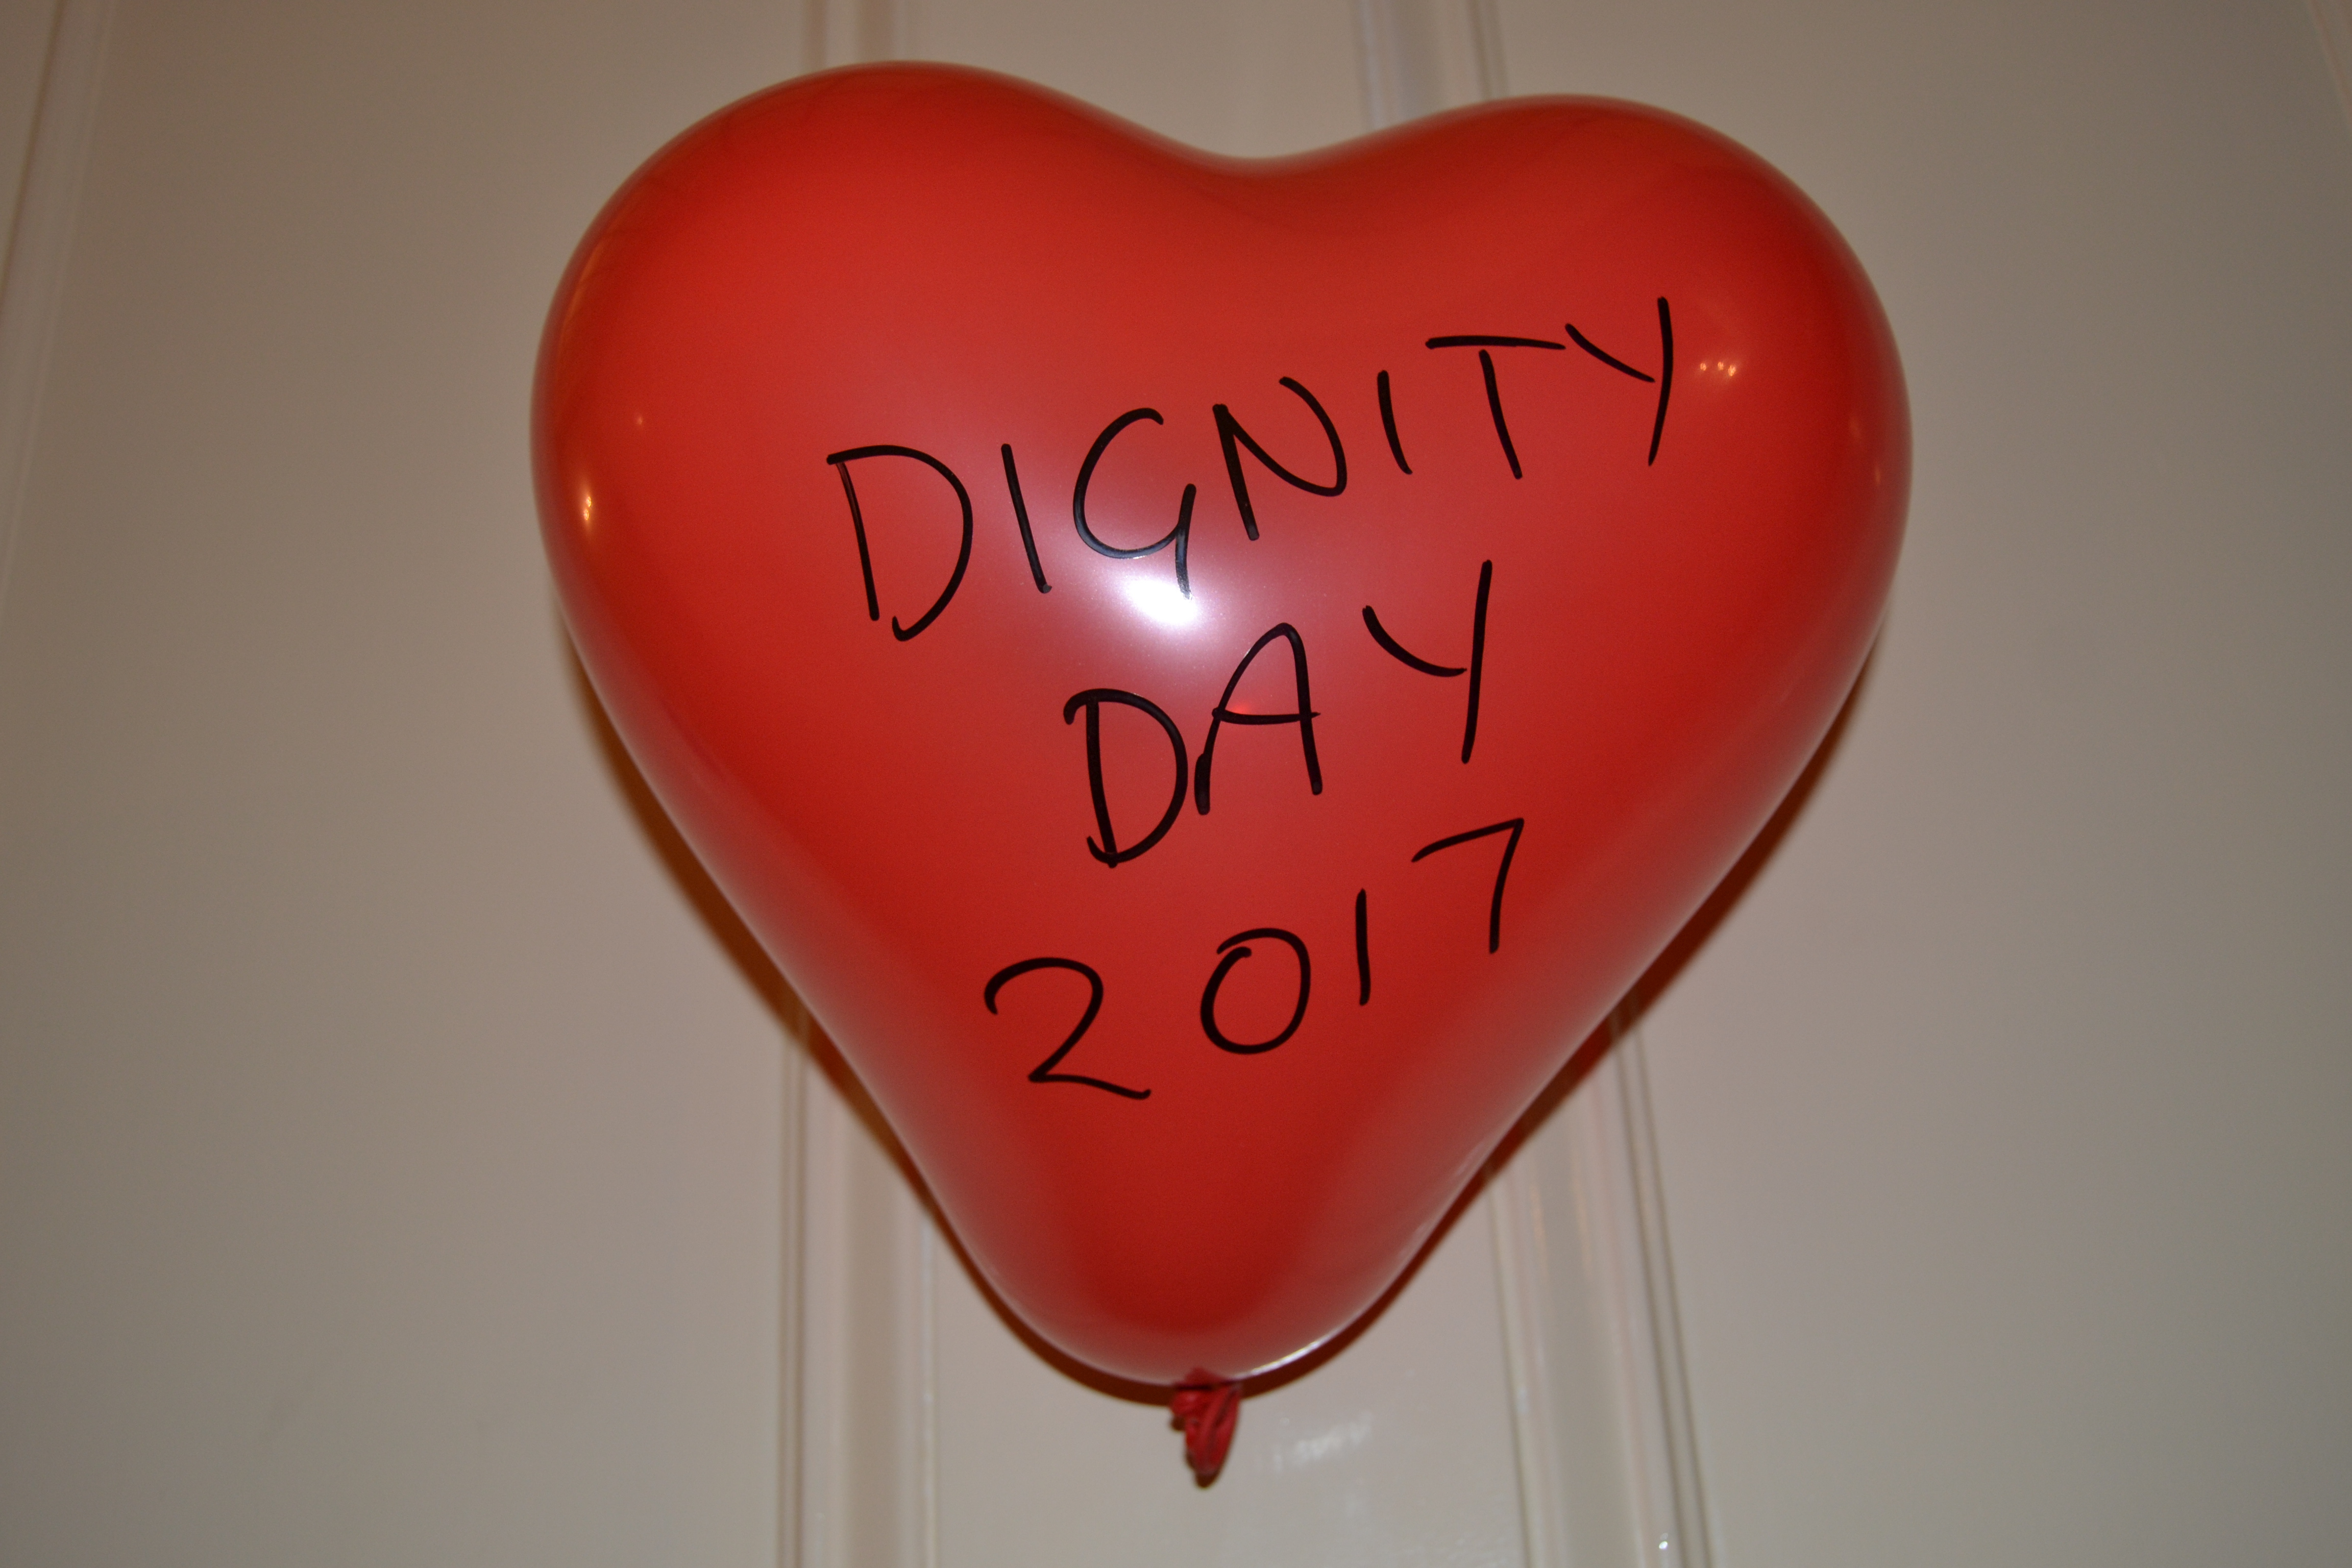 Dignity Day 2017